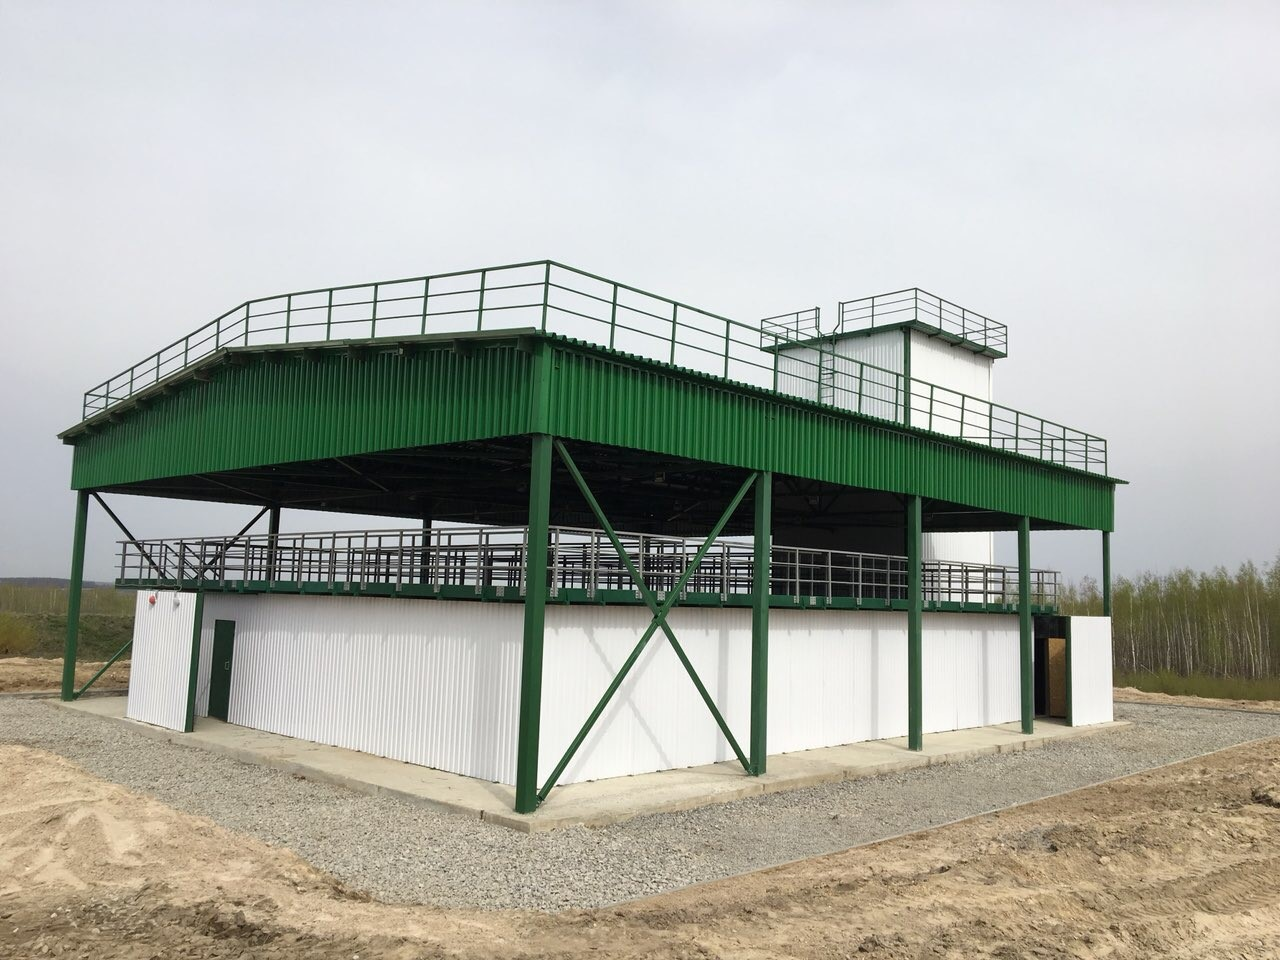 Steel frame structures for indoor and field shooting ranges, firearms training sites